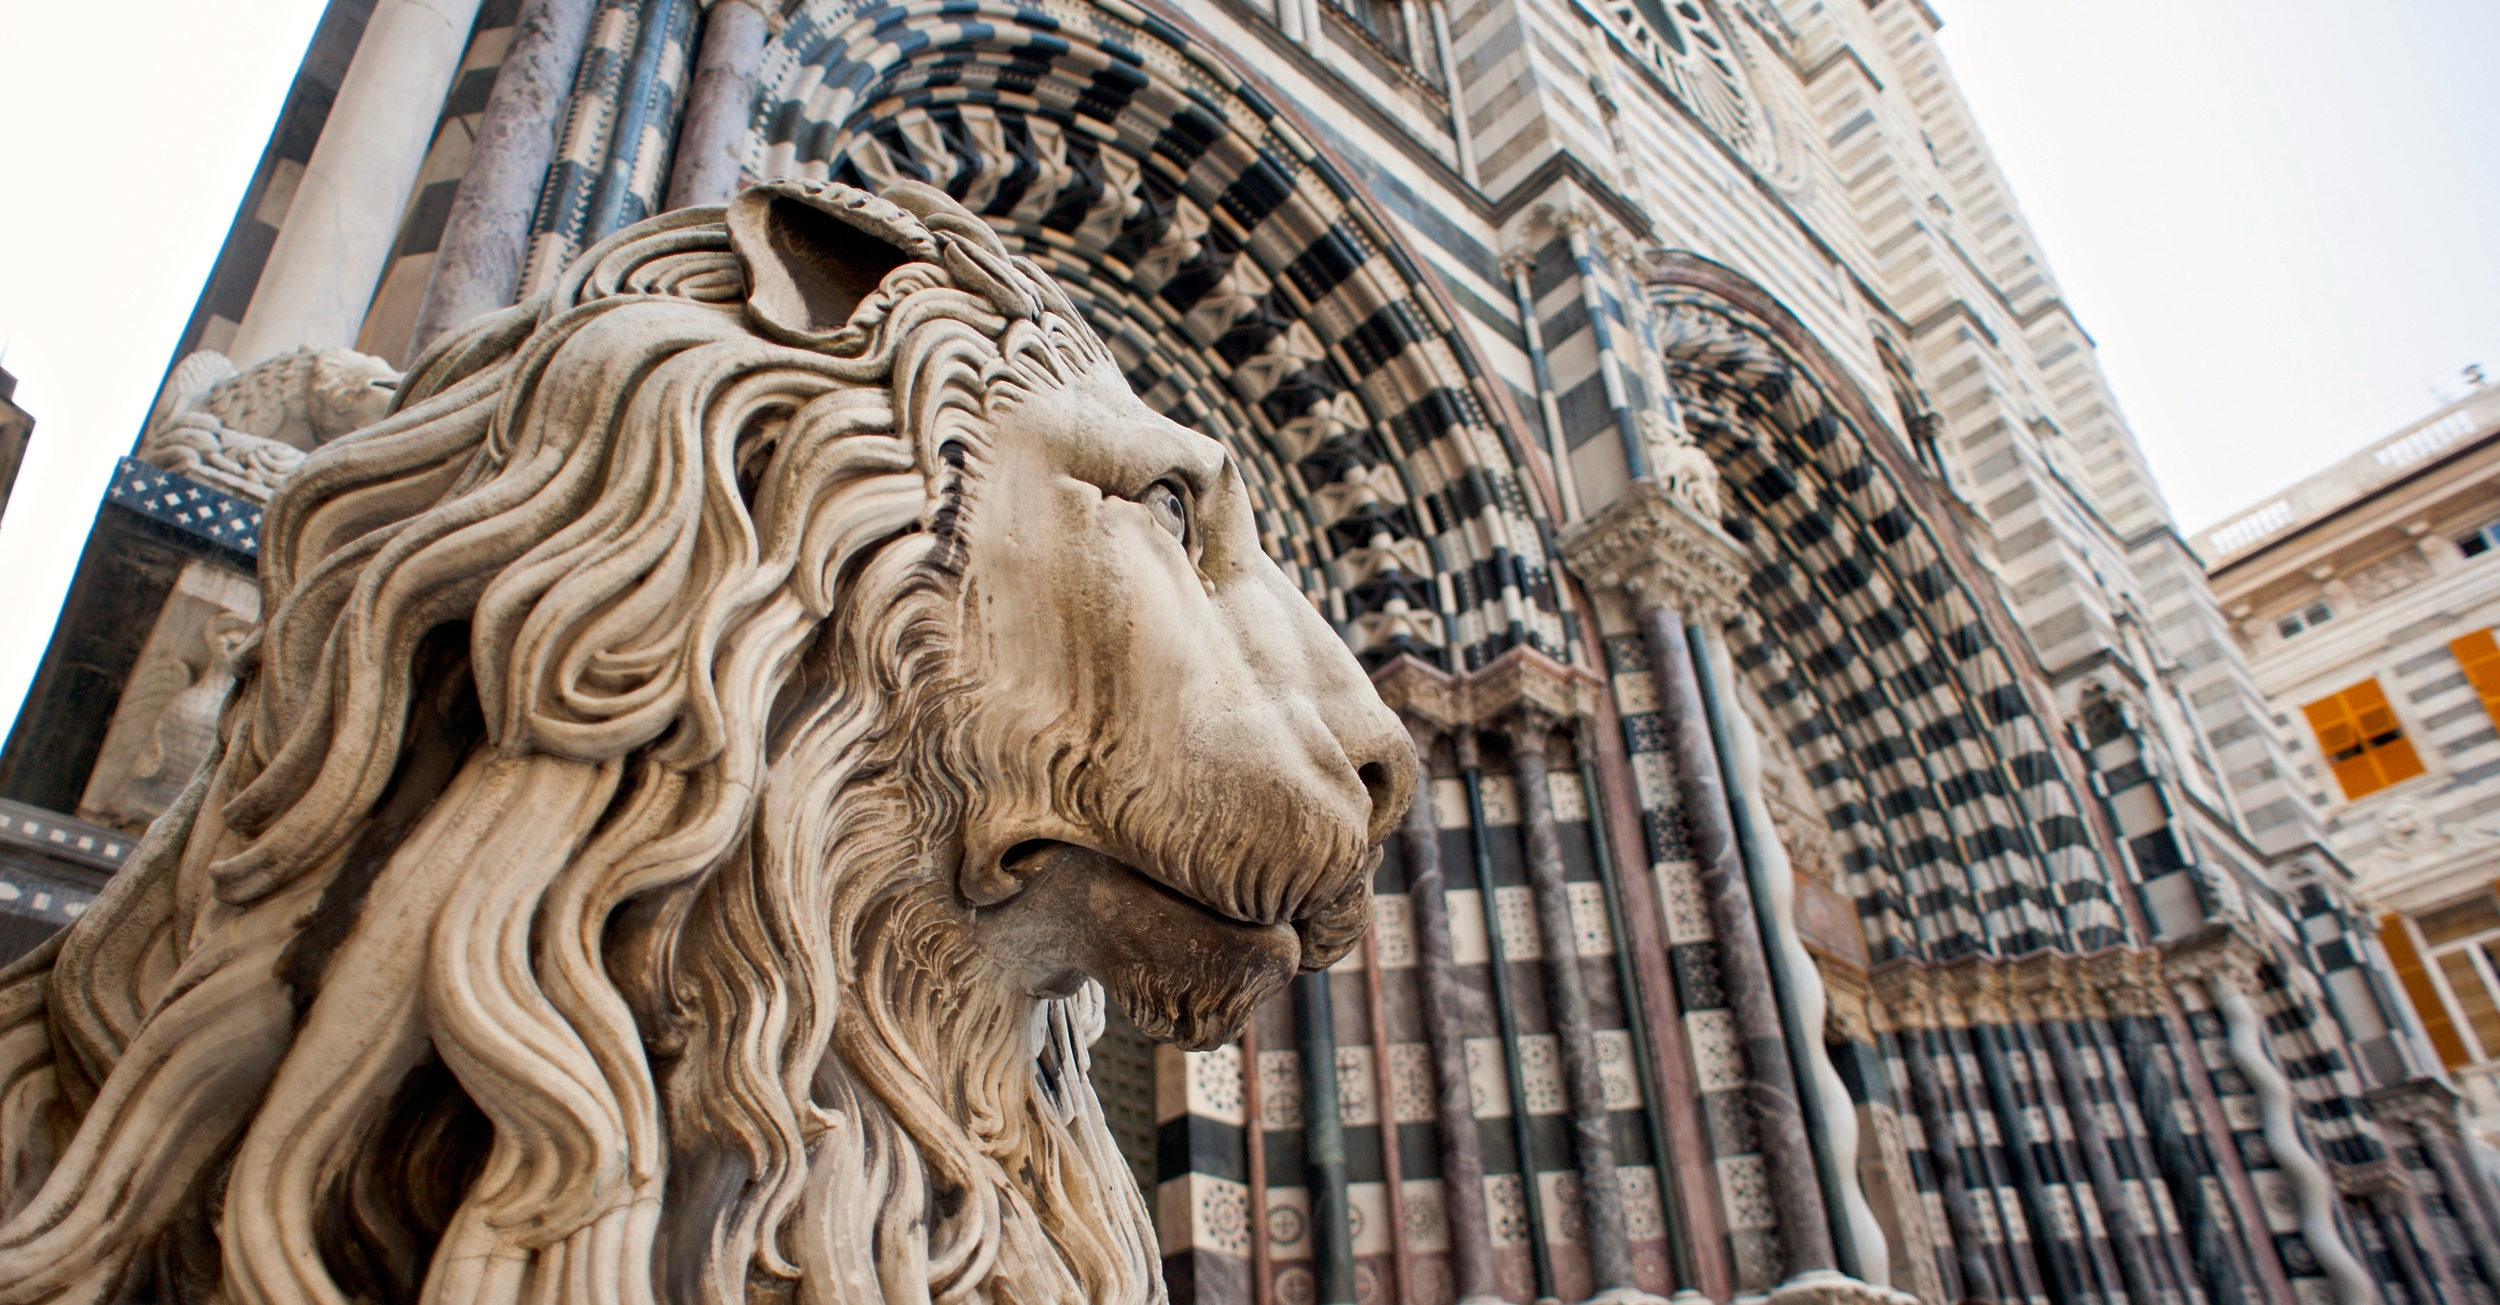 This proud lion protects Genoa's Church of San Lorenzo